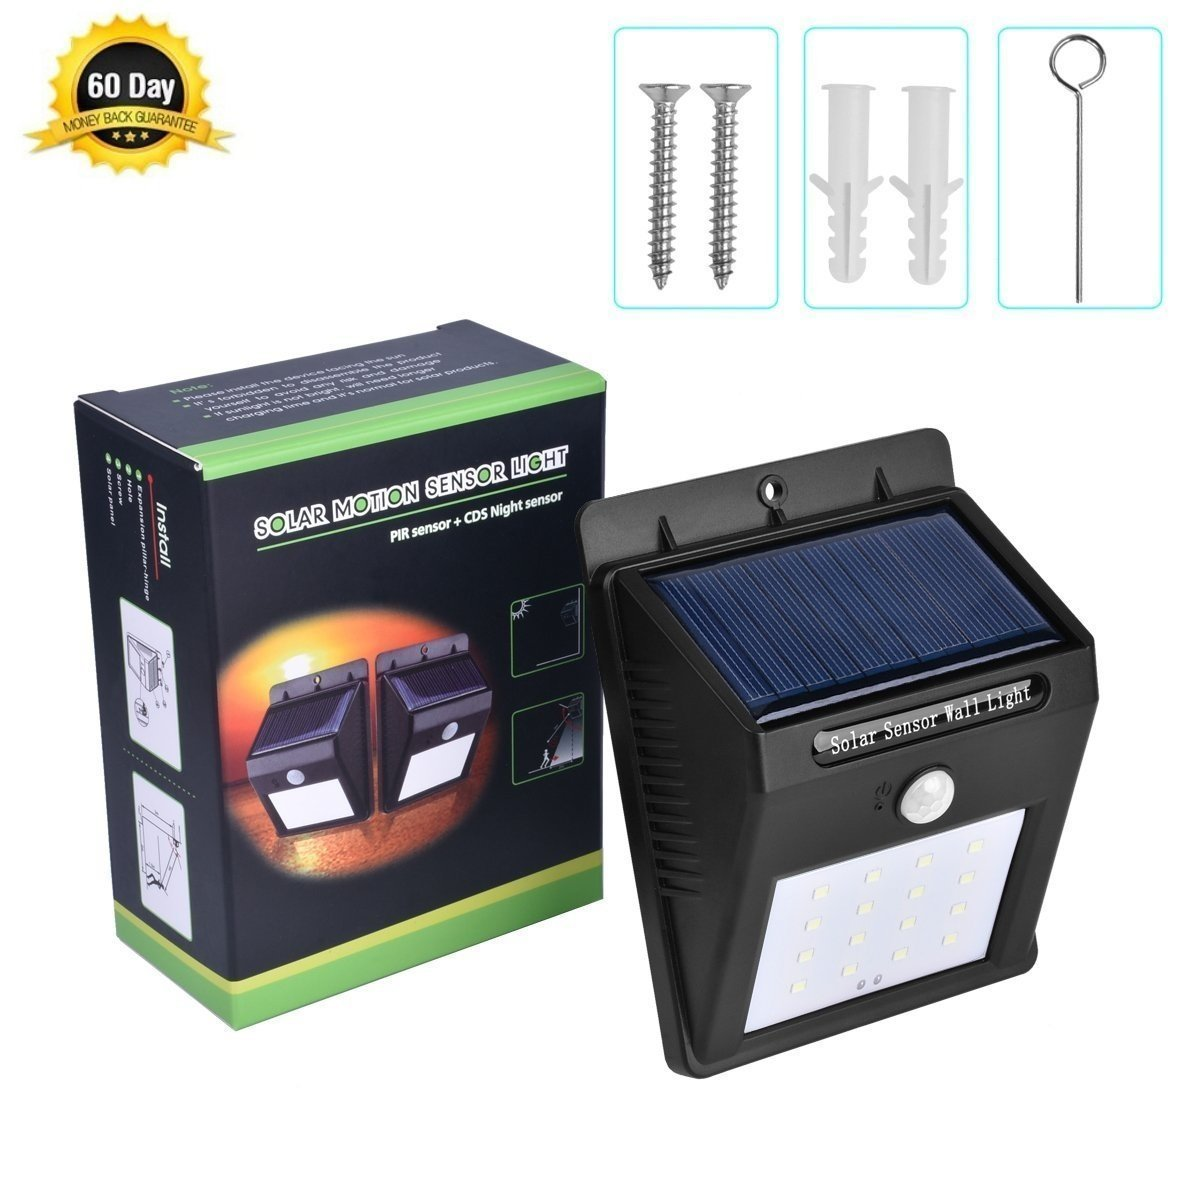 Anfei Garden Lights Solarsolar Pir Motion Sensor 16 Solar Pin Circuit On Pinterest Energy Powered Outdoor Bright Light